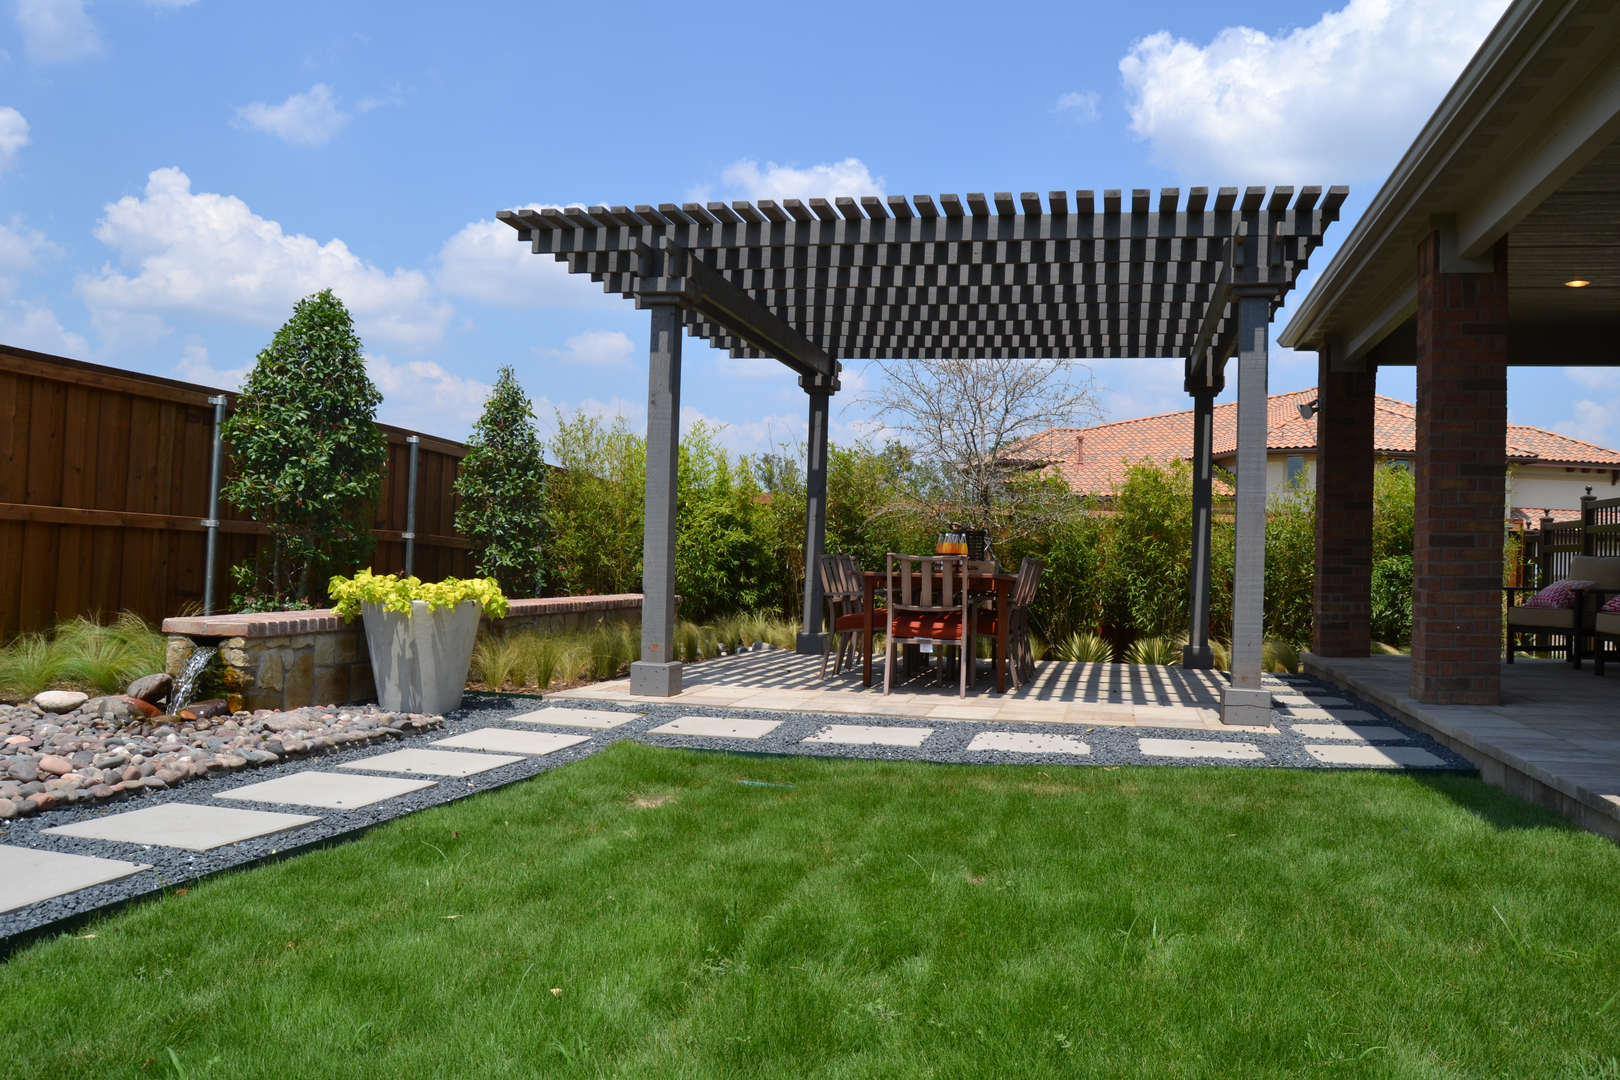 Garden Design Landscaping in Dallas